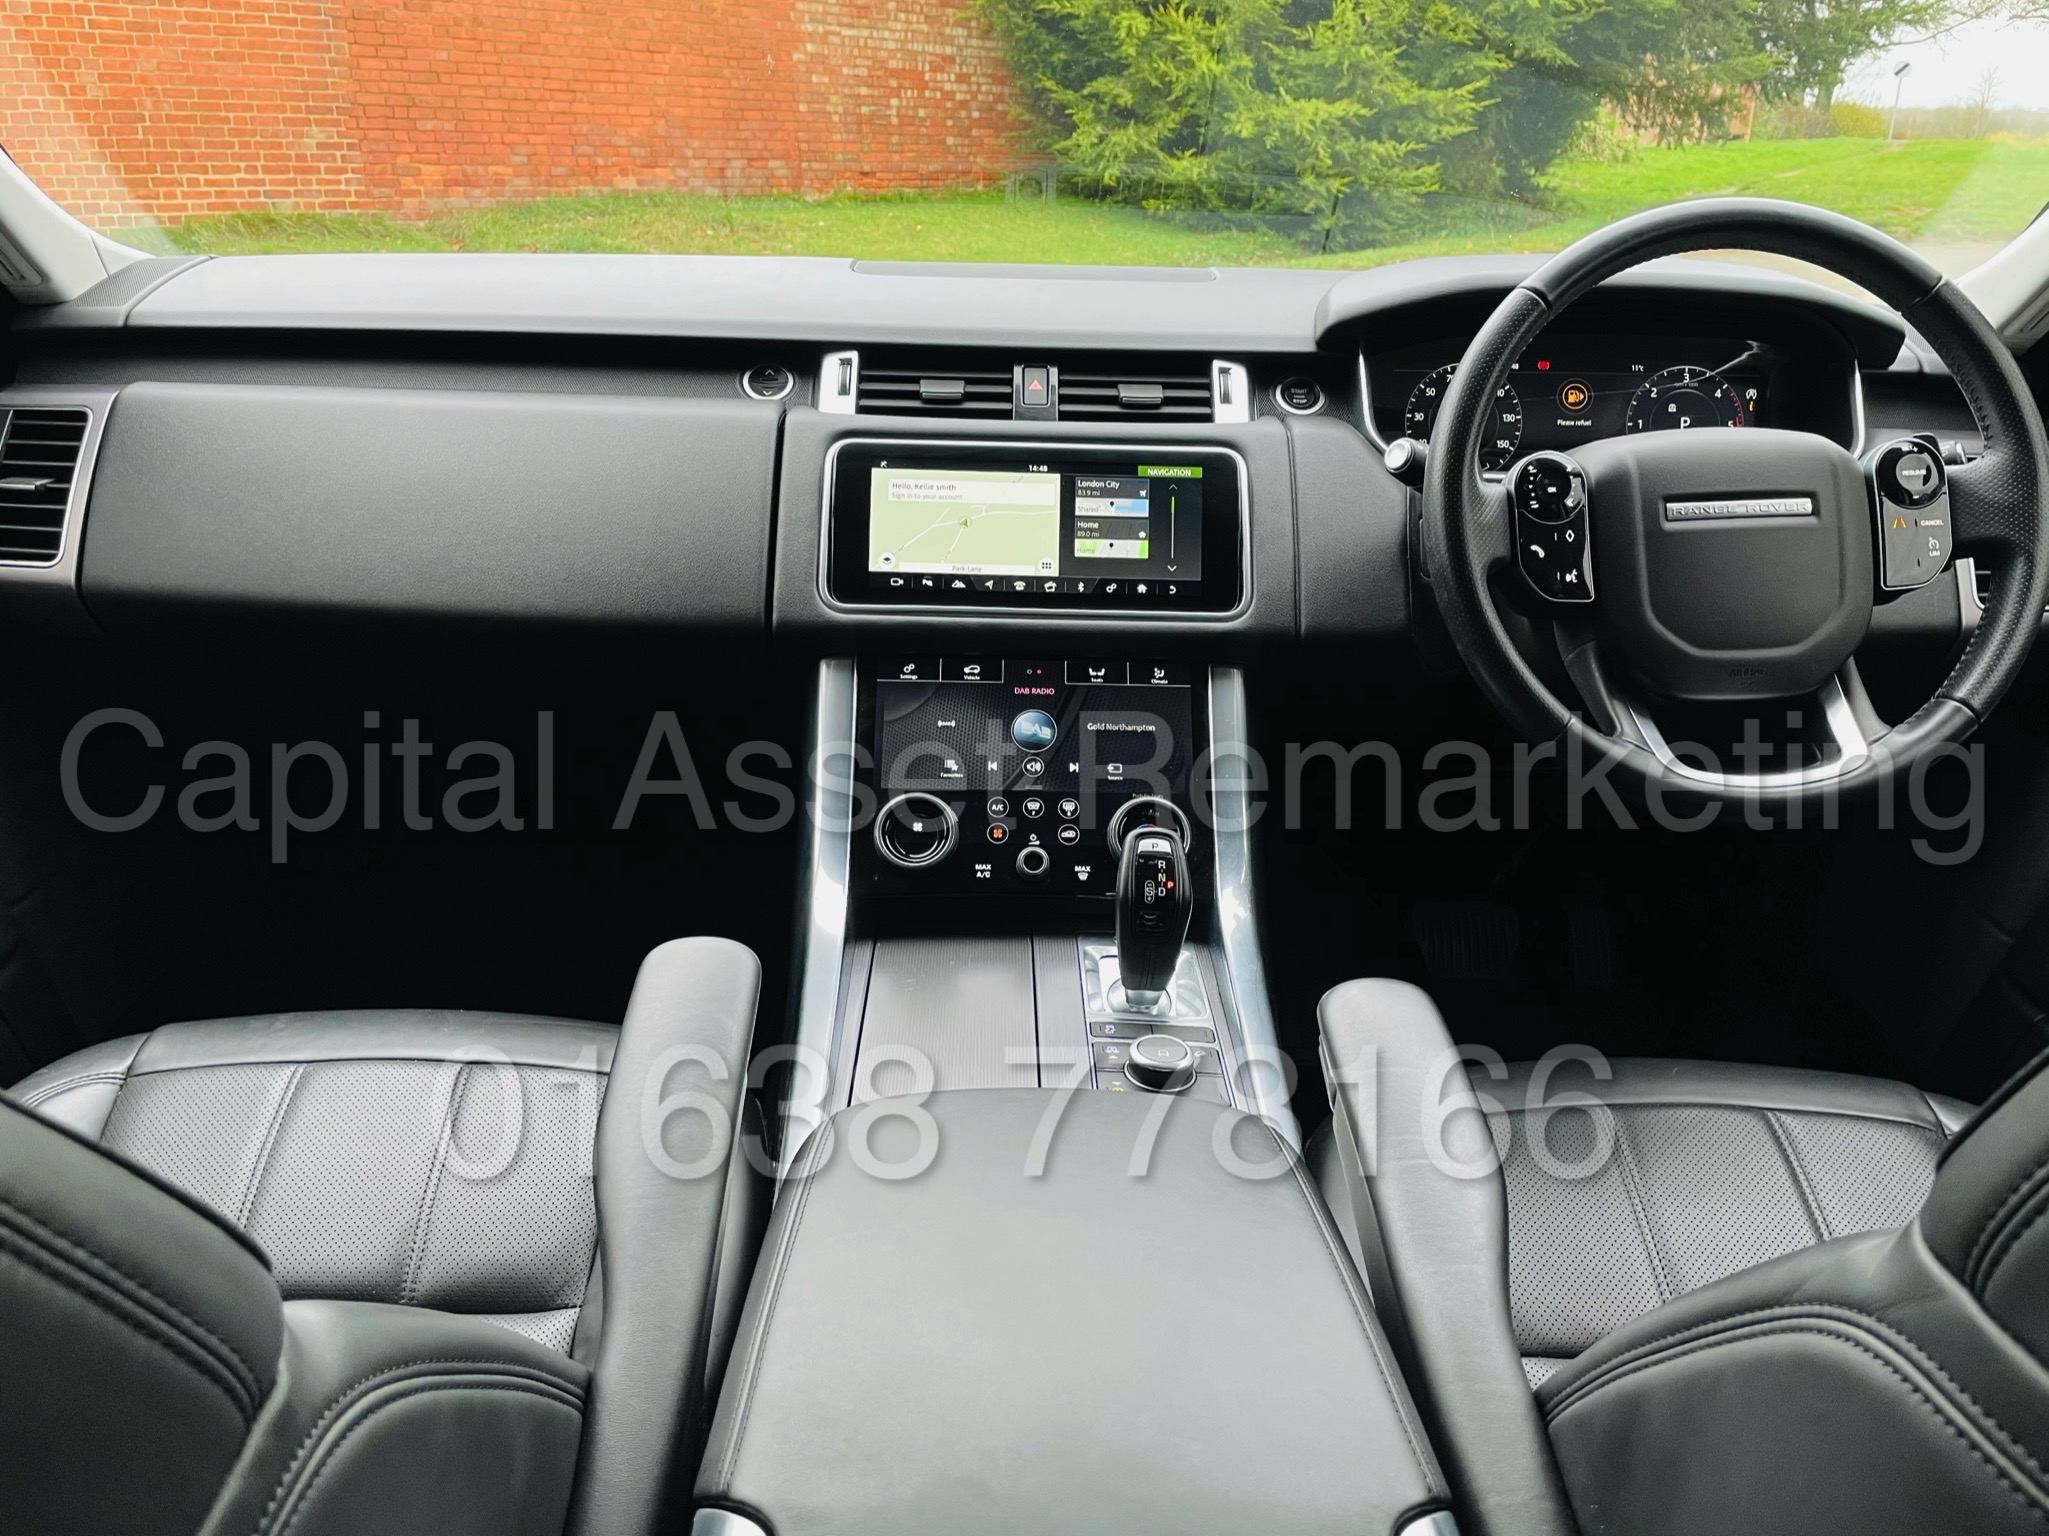 RANGE ROVER SPORT *HSE EDITION* SUV (2019 MODEL) '3.0 SDV6 - 306 BHP - 8 SPEED AUTO' *FULLY LOADED* - Image 33 of 56